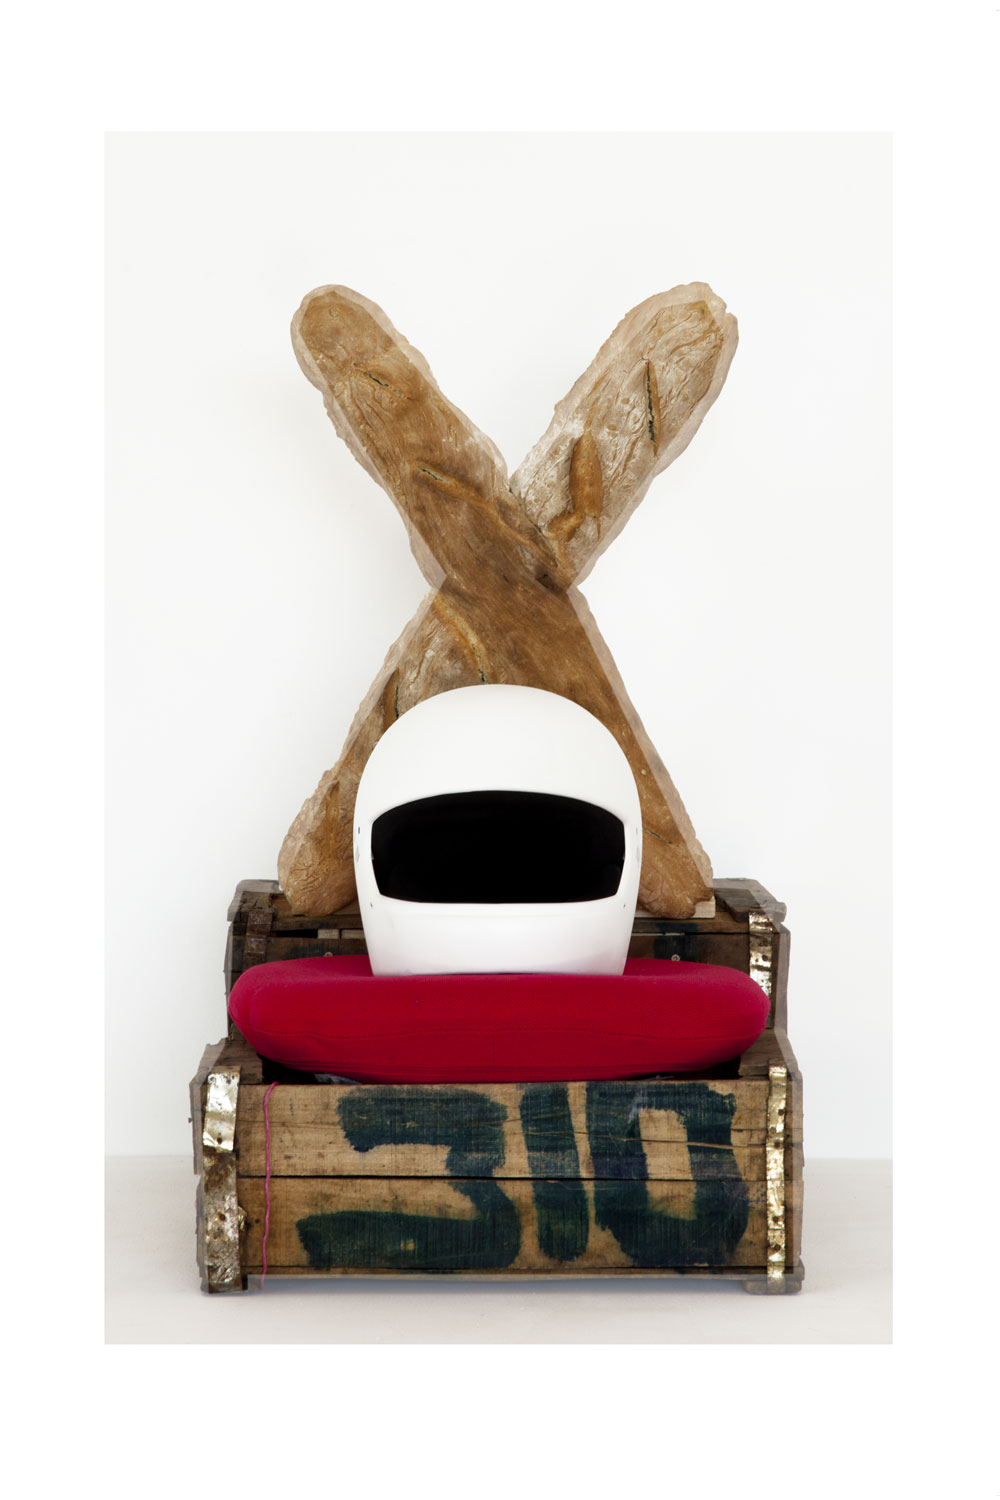 Sculpture (crate, helmet, seat cushion, bread)